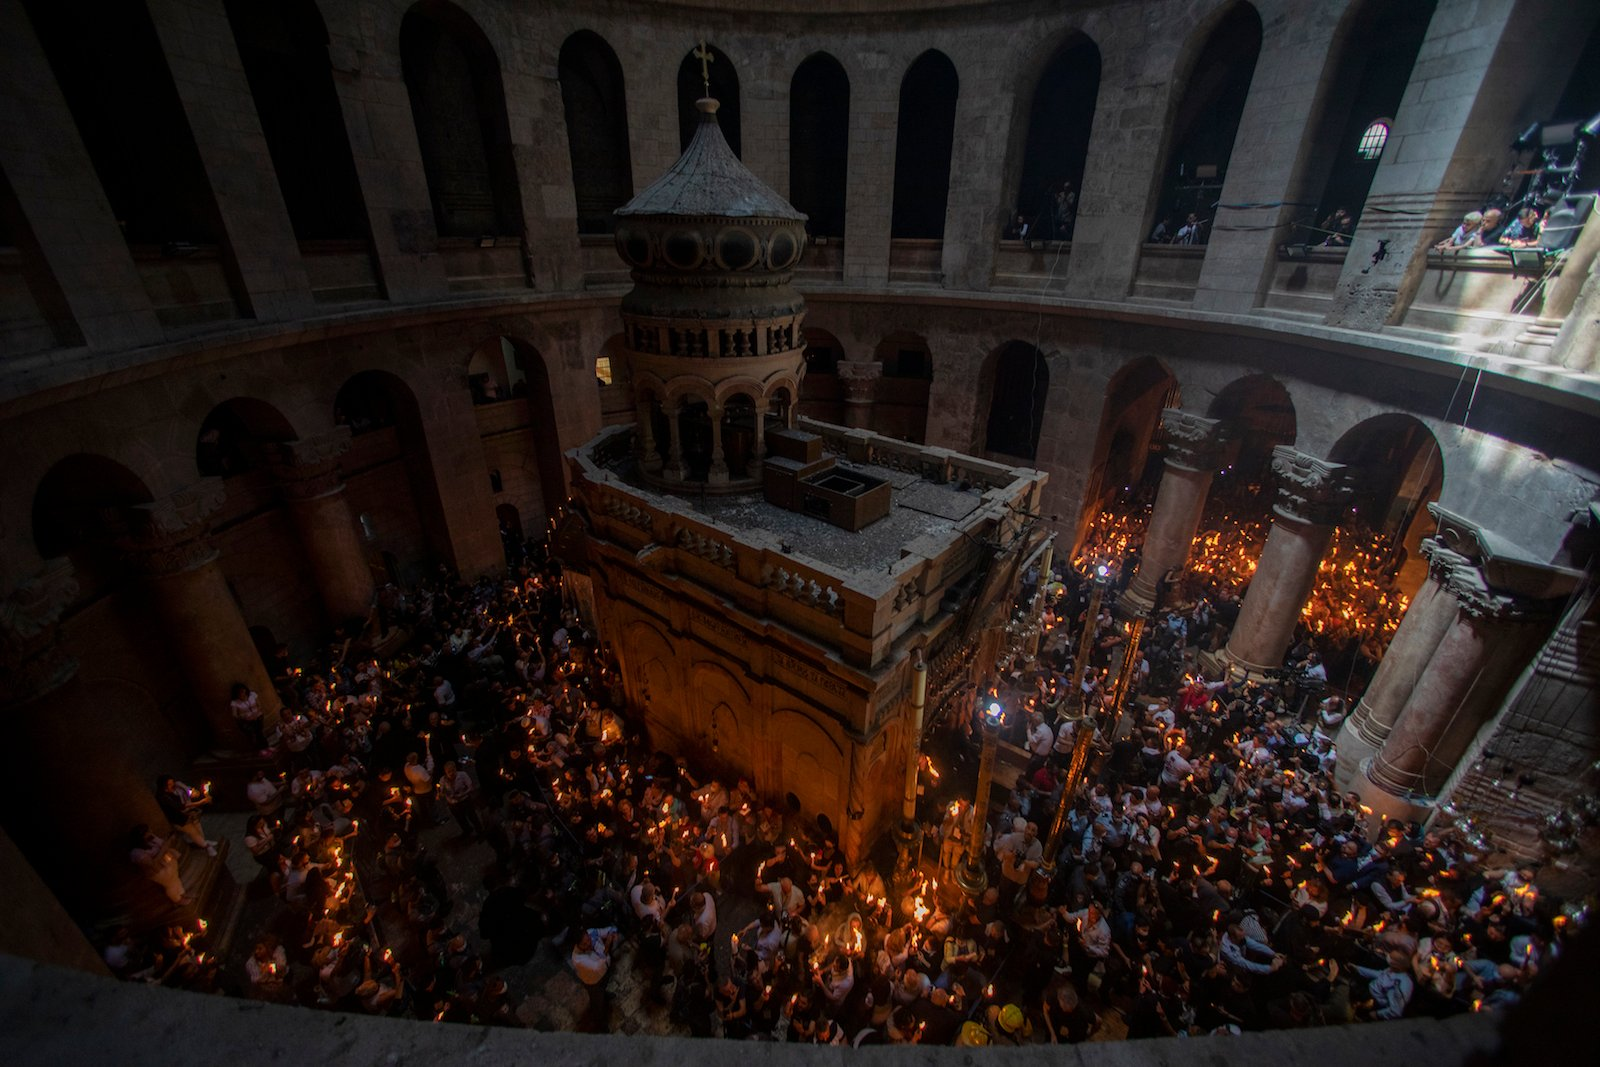 Vaccinated faithful throng Jerusalem church for Holy Fire